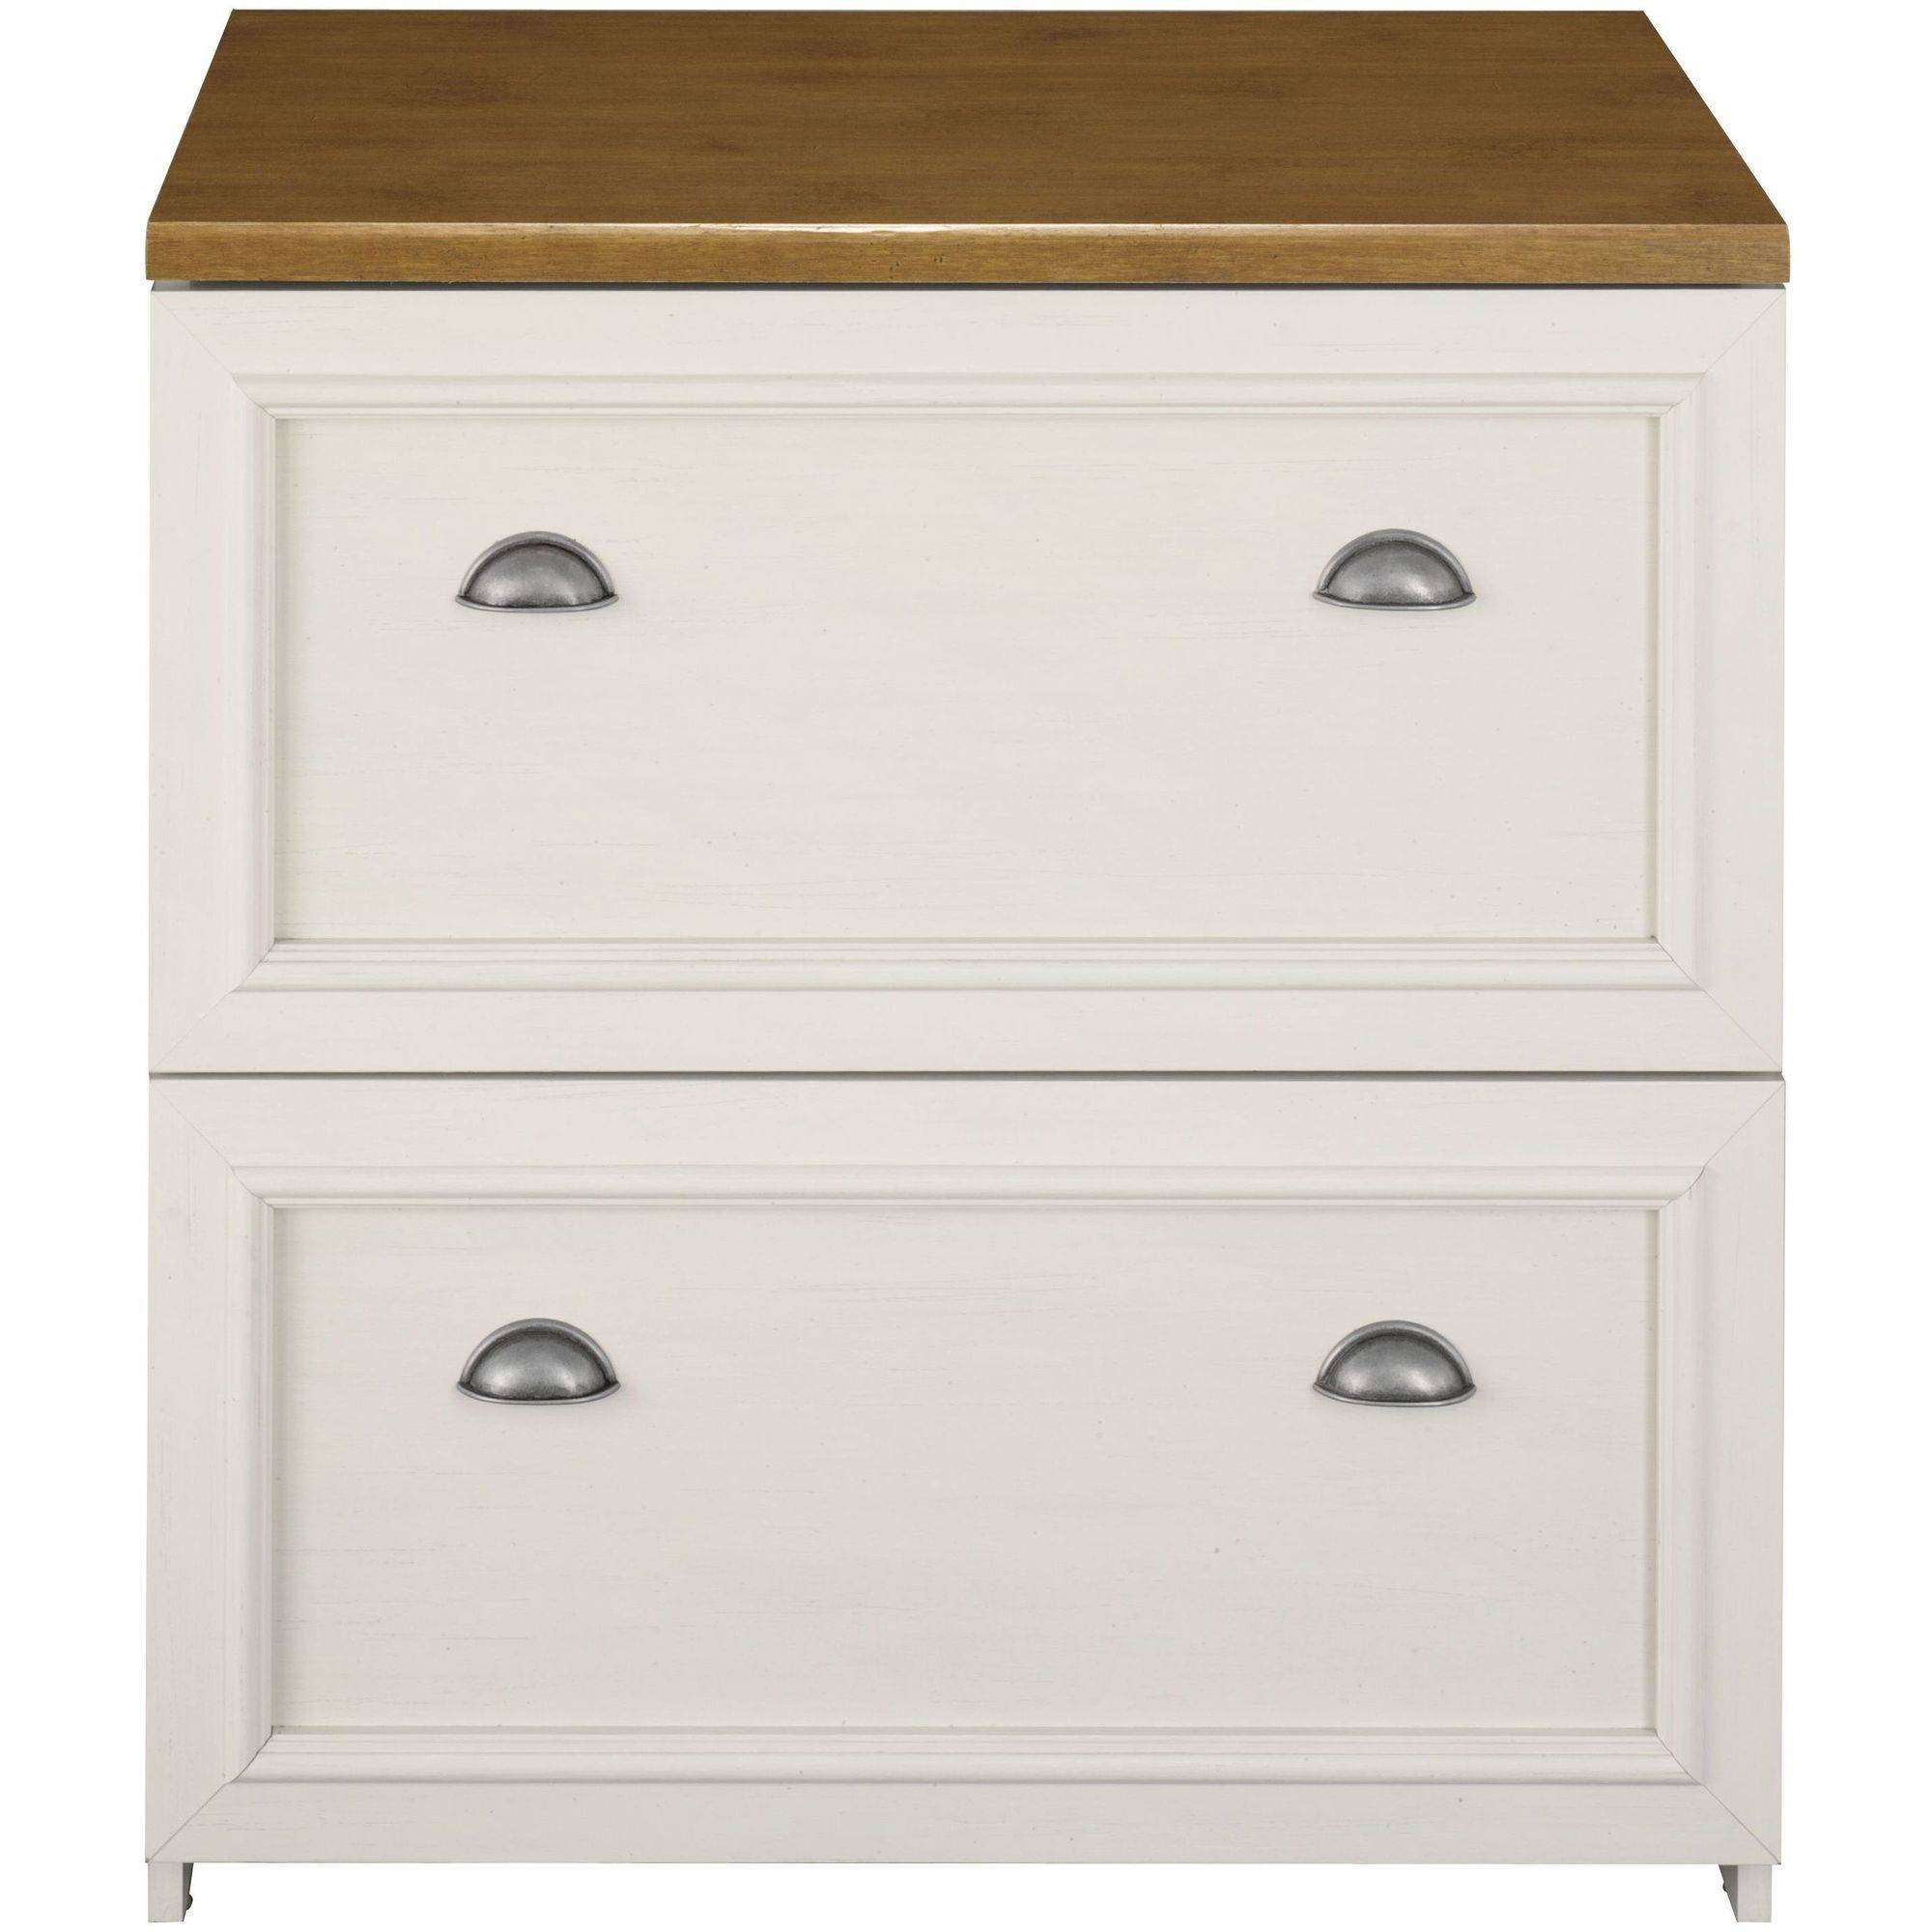 Bush Fairview 2 Drawer Lateral File Cabinet, Multiple Finishes   Walmart.com